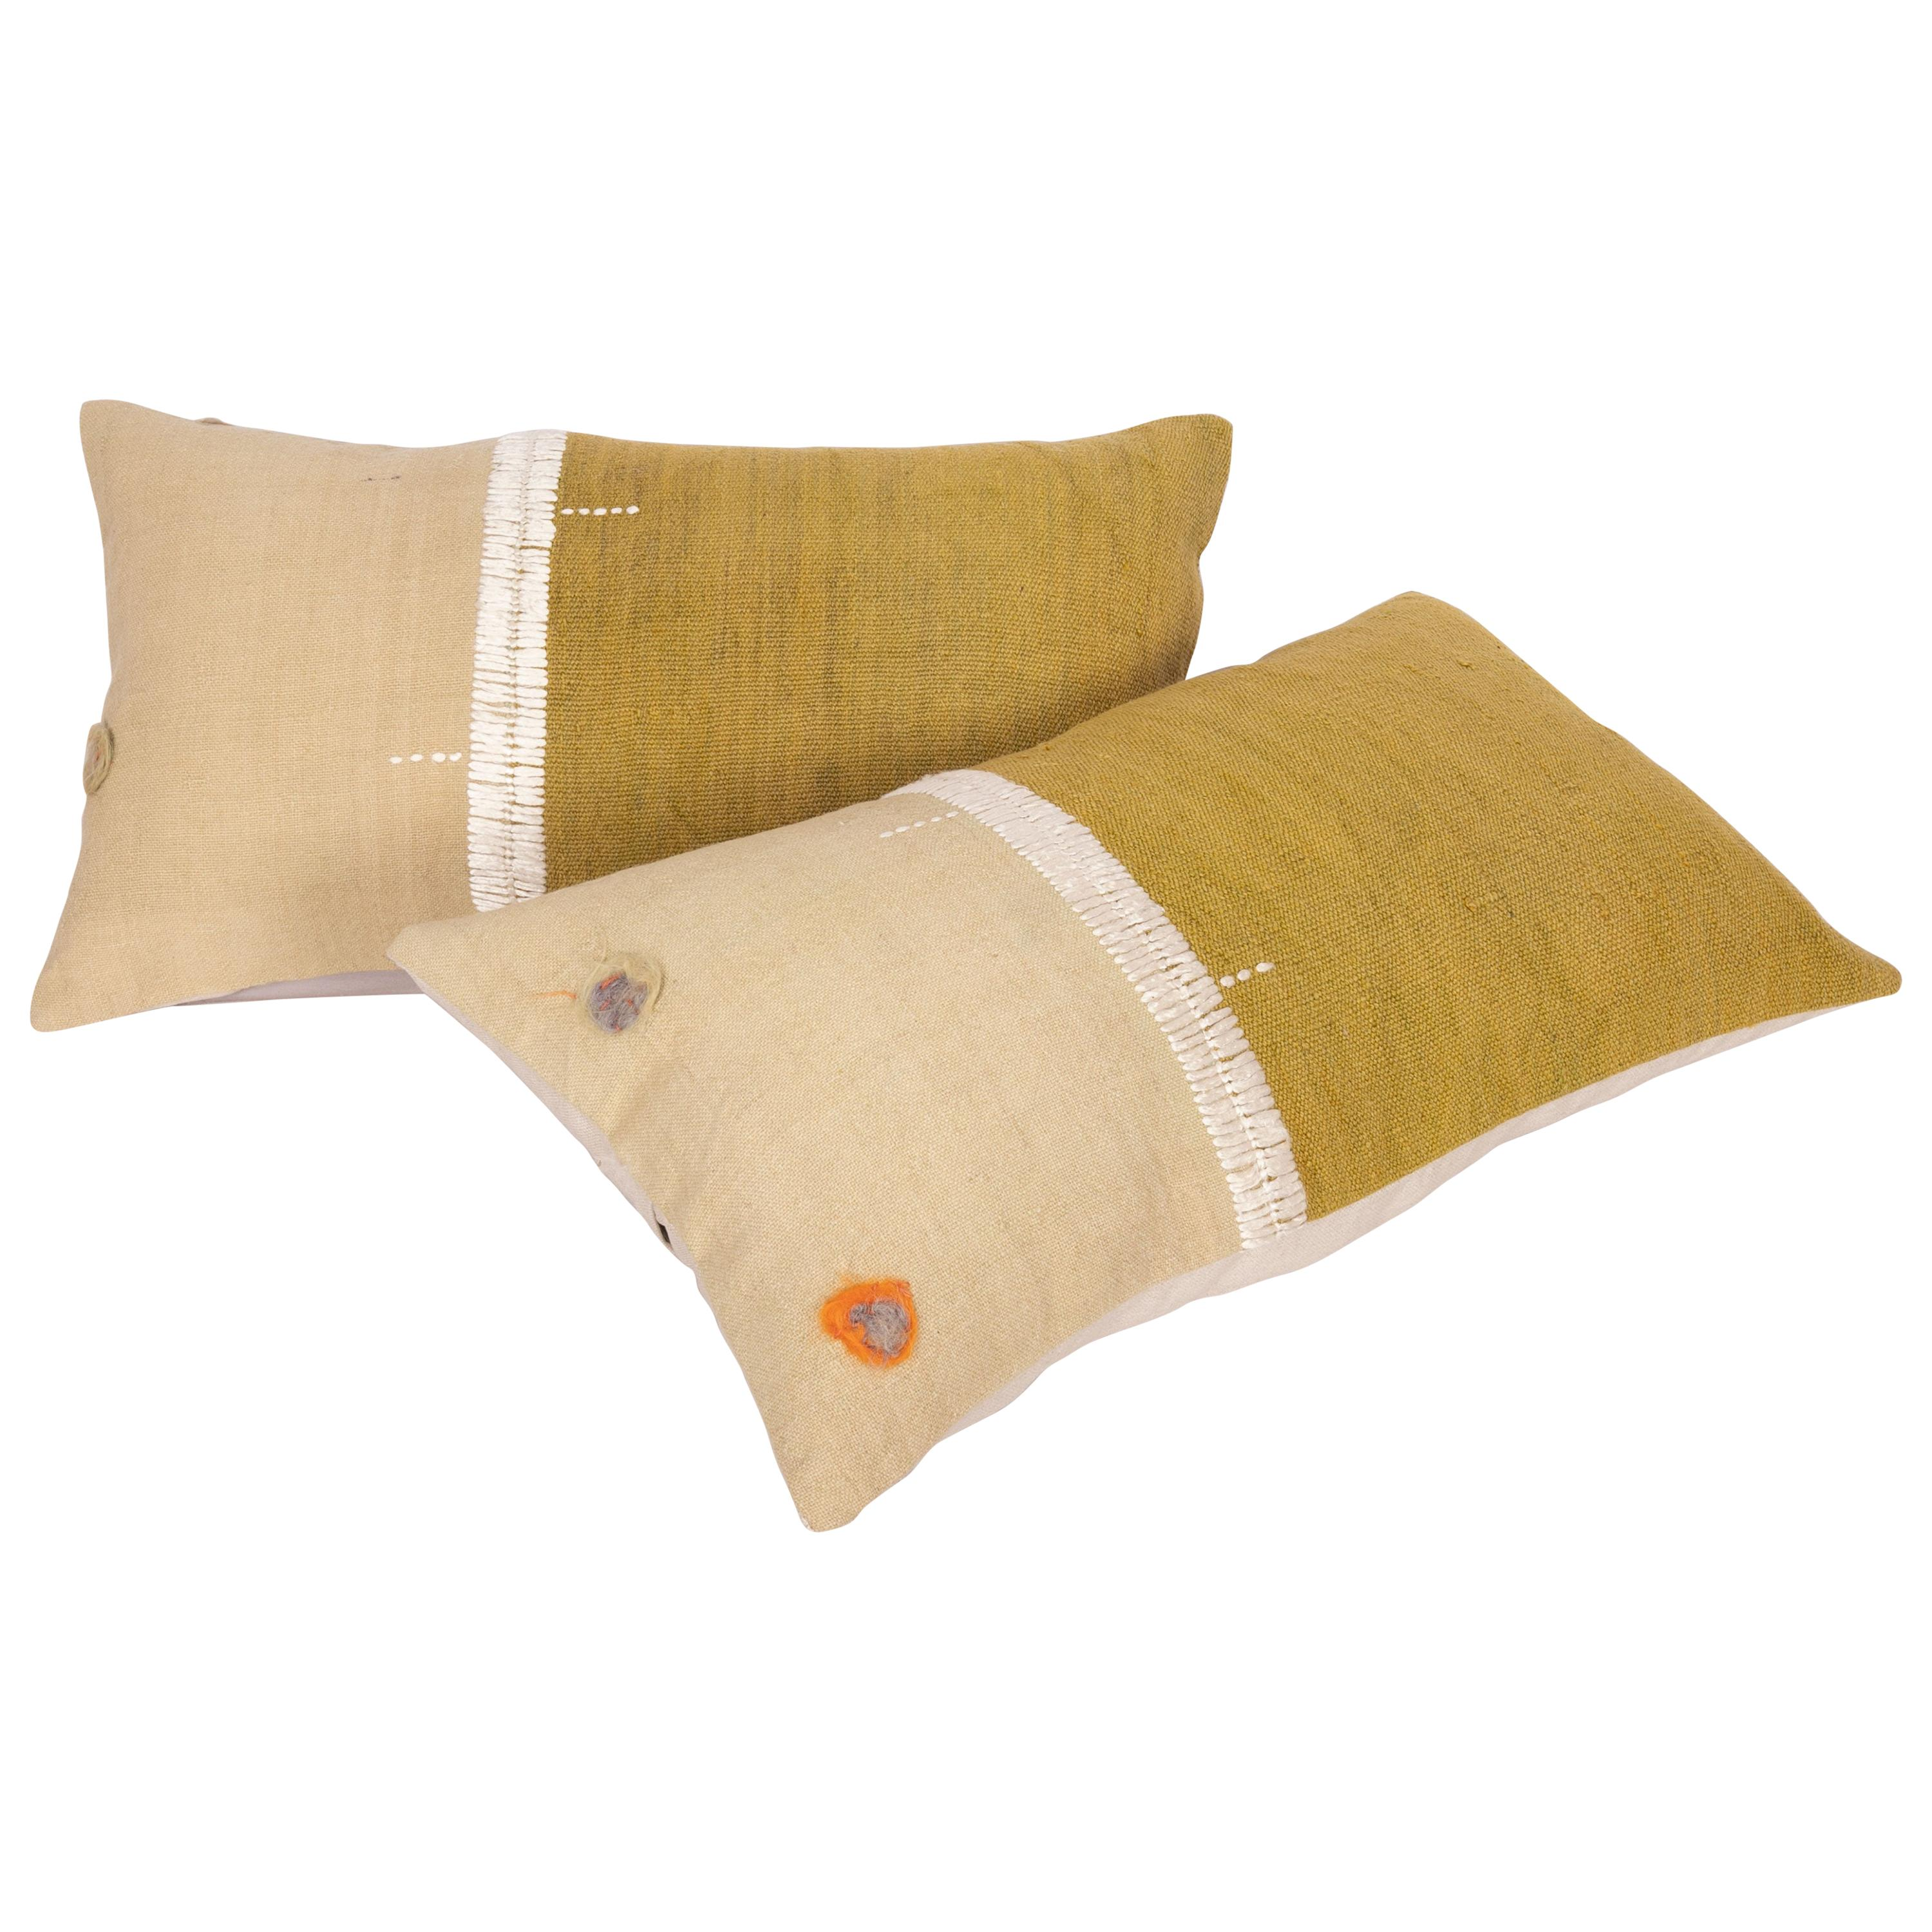 Lumbar Pillowcases Made from an Eastern Anatolian Perde 'Cover' Mid-20th Century